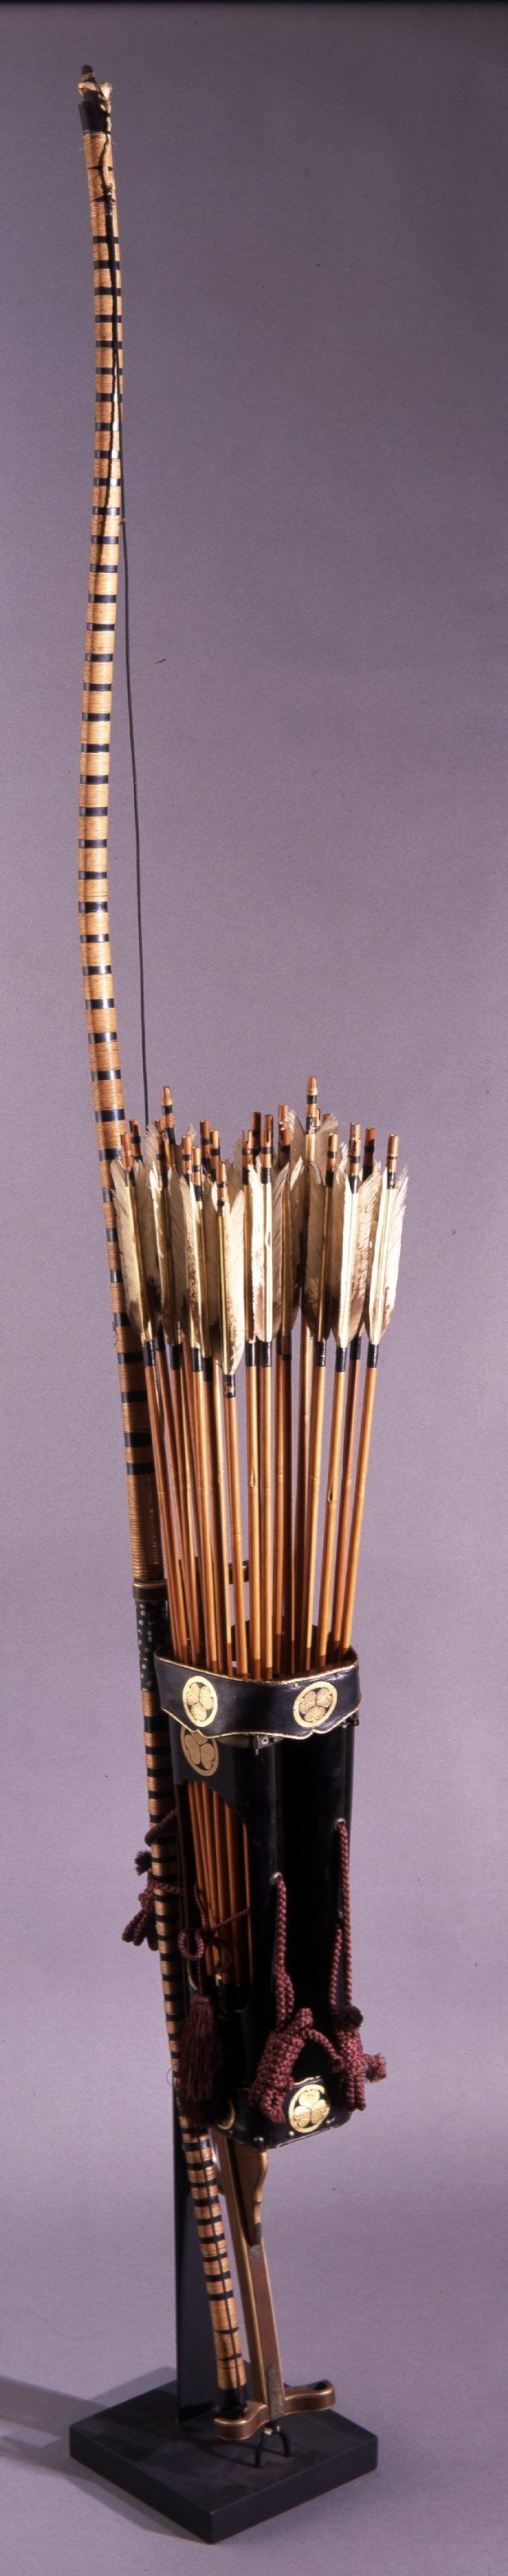 Edo Archery: 19th century archery set, one bow missing.